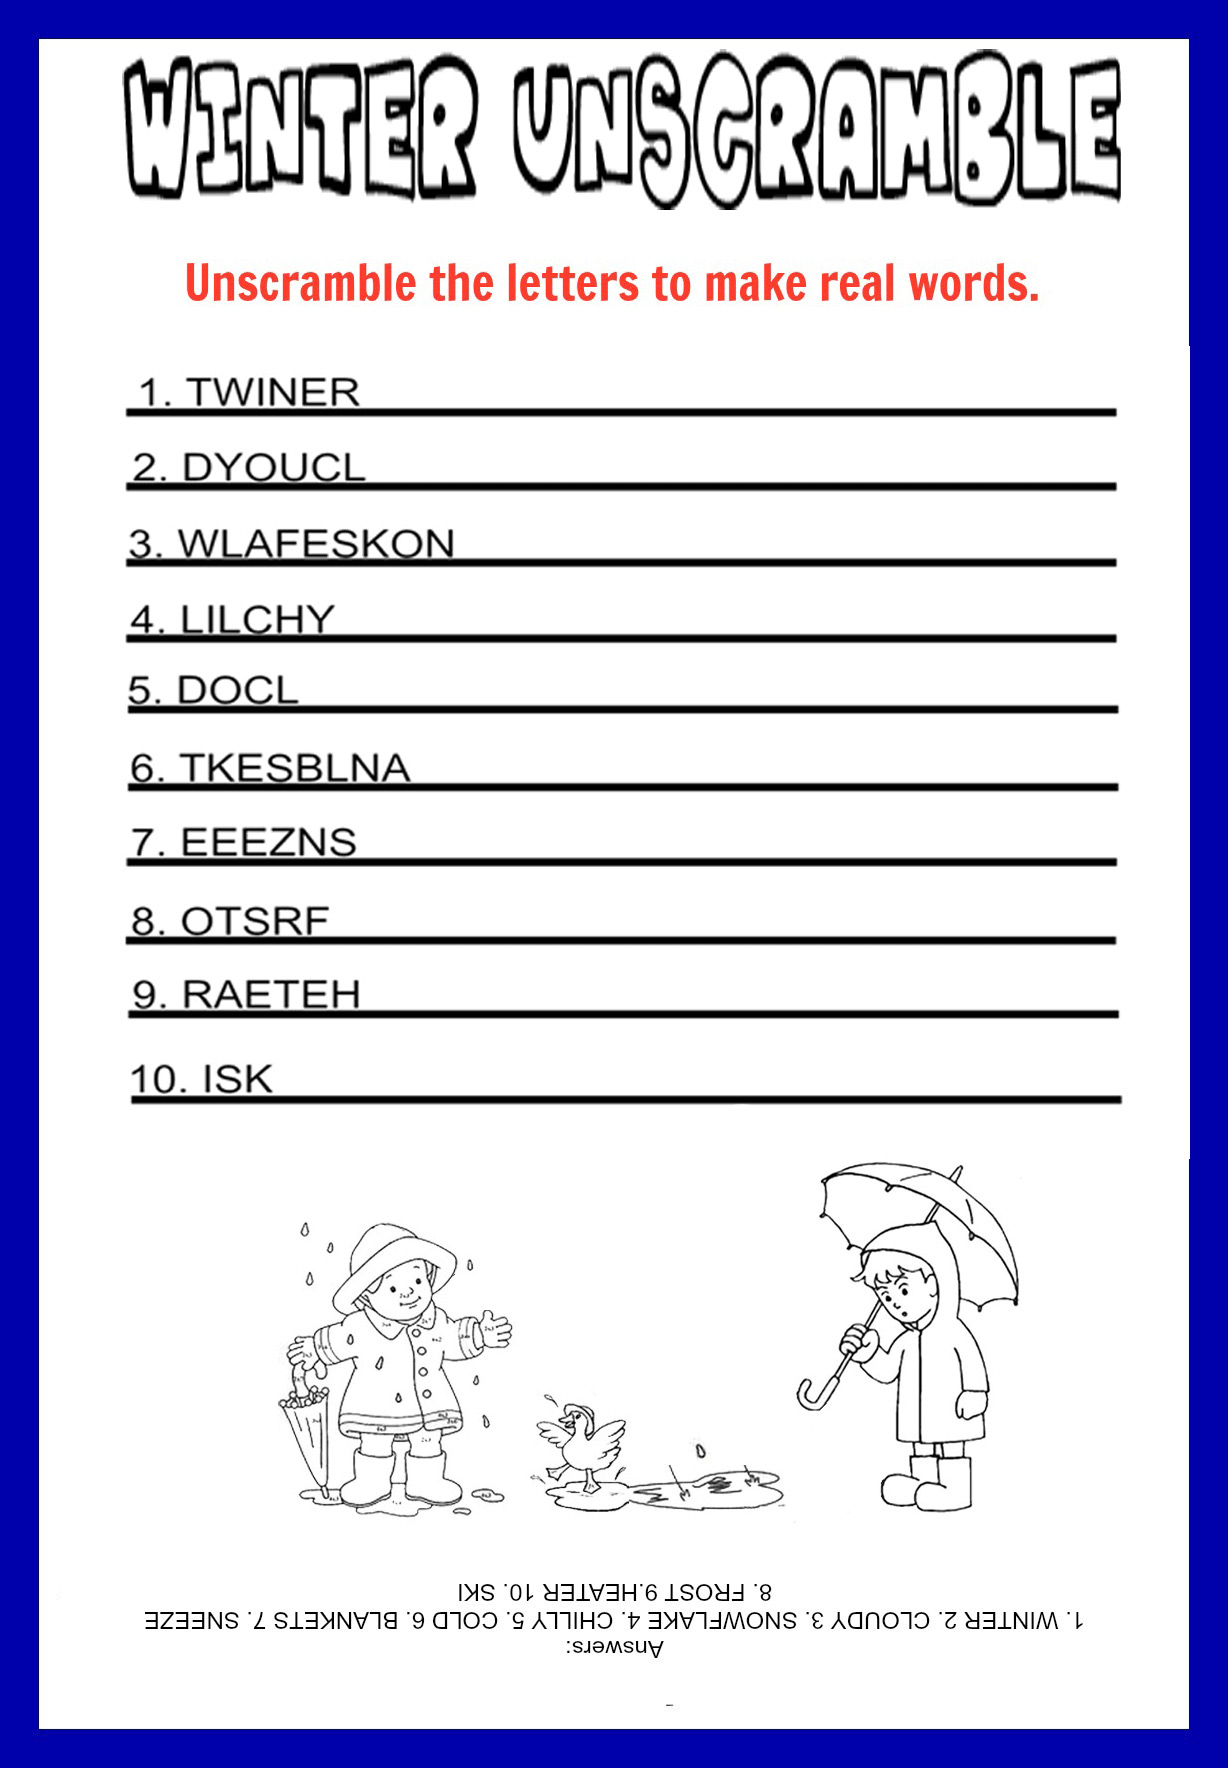 Unscramble - Printable - Kids Games - Printable Unscramble Puzzles